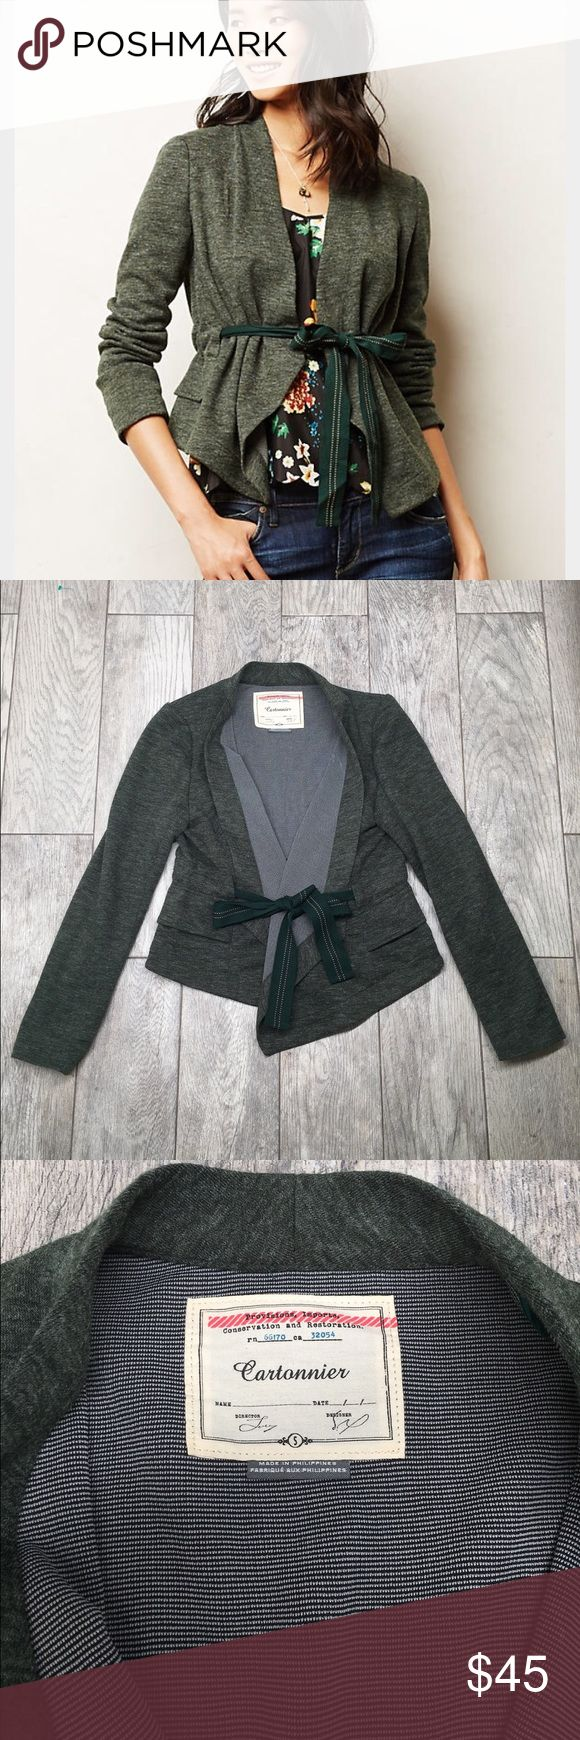 Anthropologie draped peplum jacket green S Anthropologie Cartonnier draped peplum jacket. Beautiful heathered Hunter green color. Ribbon cinched waist makes this jacket very flattering. Soft and comfortable. Front pockets. Fully lined. EUC- no damage. Size small Anthropologie Jackets & Coats Blazers